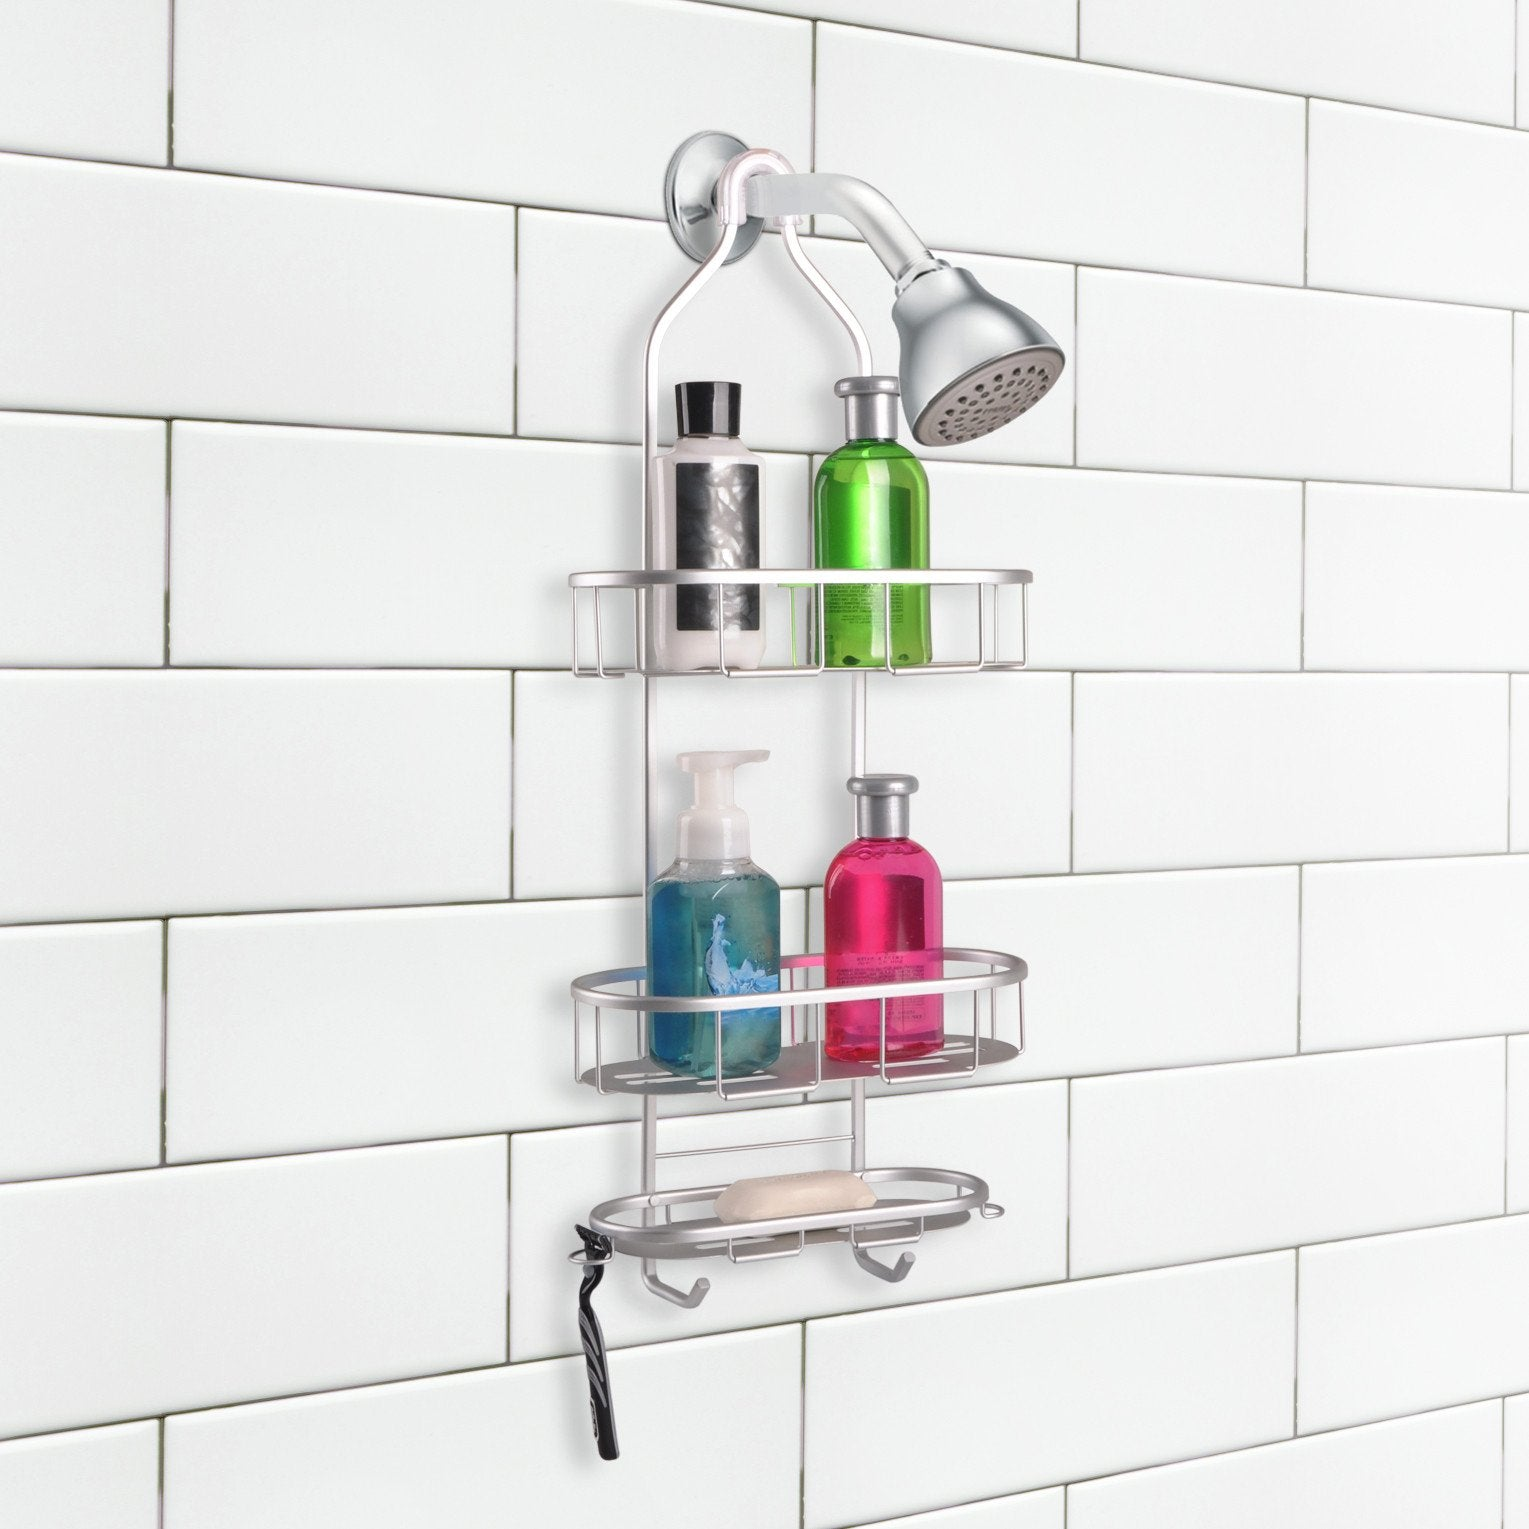 Loft97 Aluminum Rustproof Shower Caddy, 3 Shelf